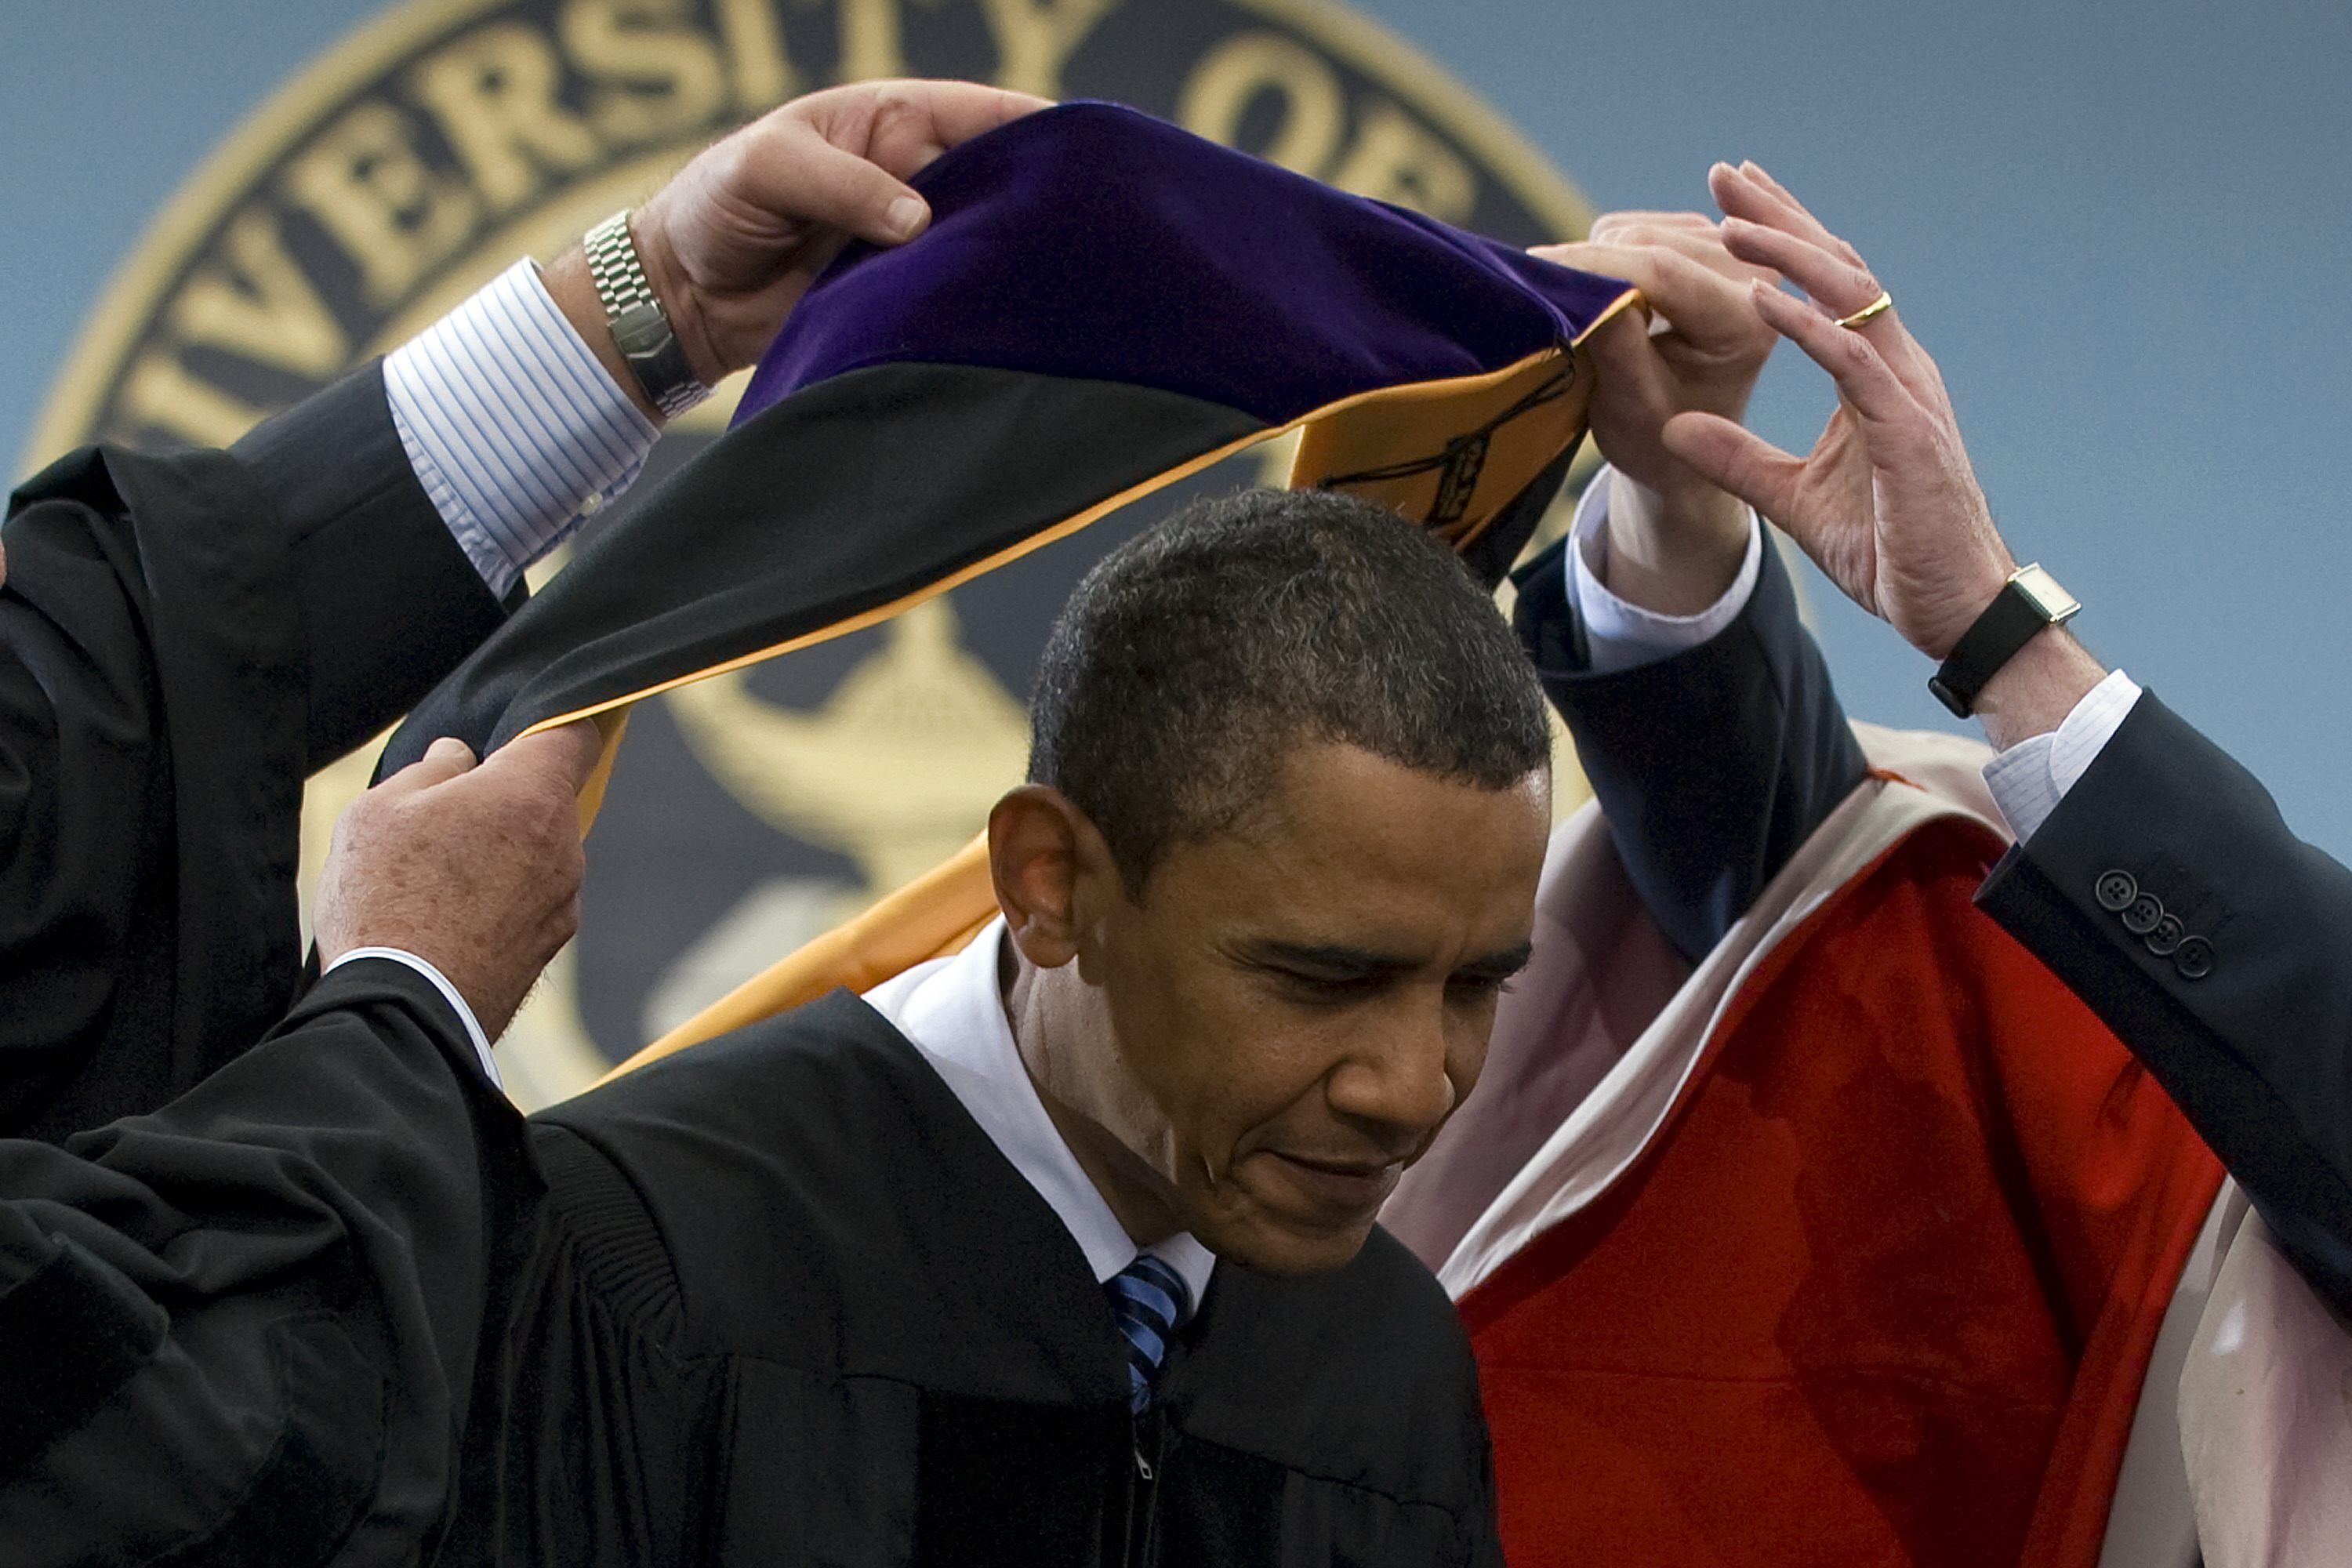 President Barack Obama receives the honorary degree of Doctor of Laws before delivering the commencement address at the University of Michigan in Ann Arbor, Michigan on May 1, 2010.